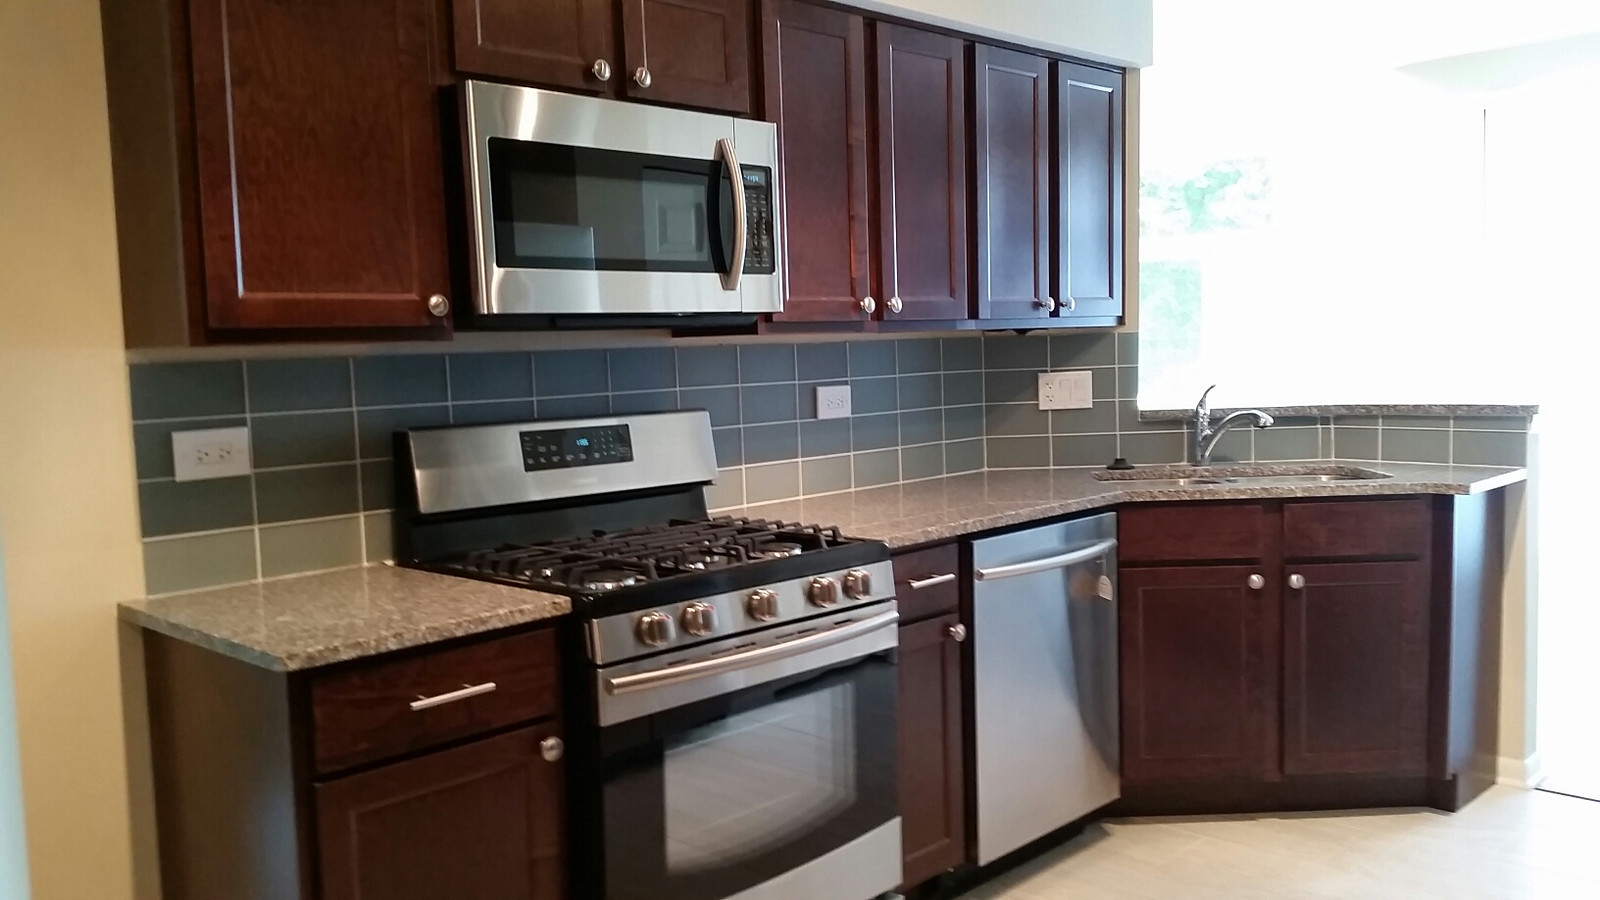 Sierra Cabinets in Harvest Brown